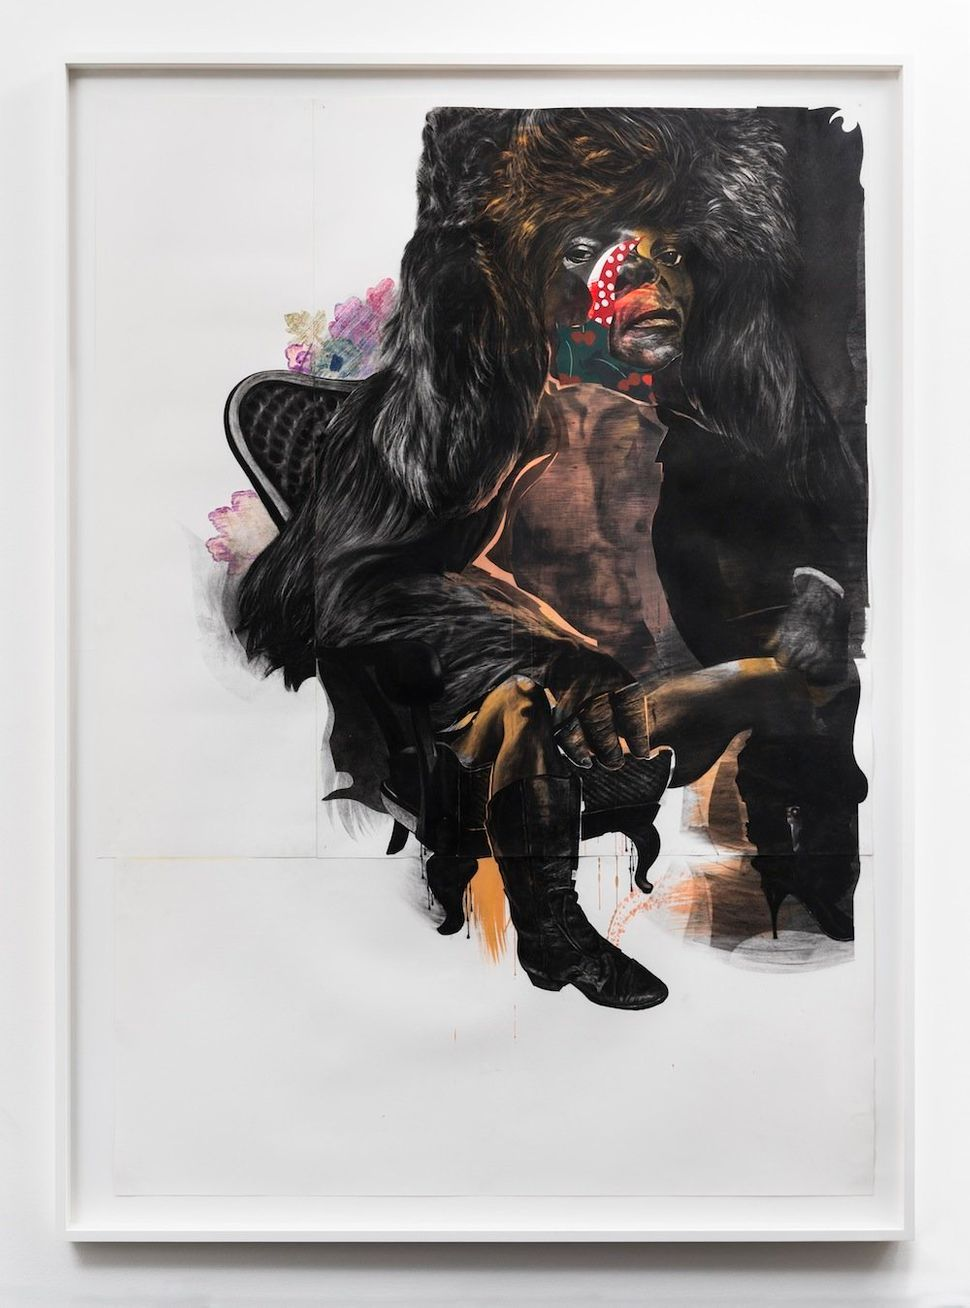 King Kong Ain't Got Nothing On Me, 2013 black charcoal, gouache, oil pastel on Coventry vellum paper 219.7 cm x 156.2 cm (86-